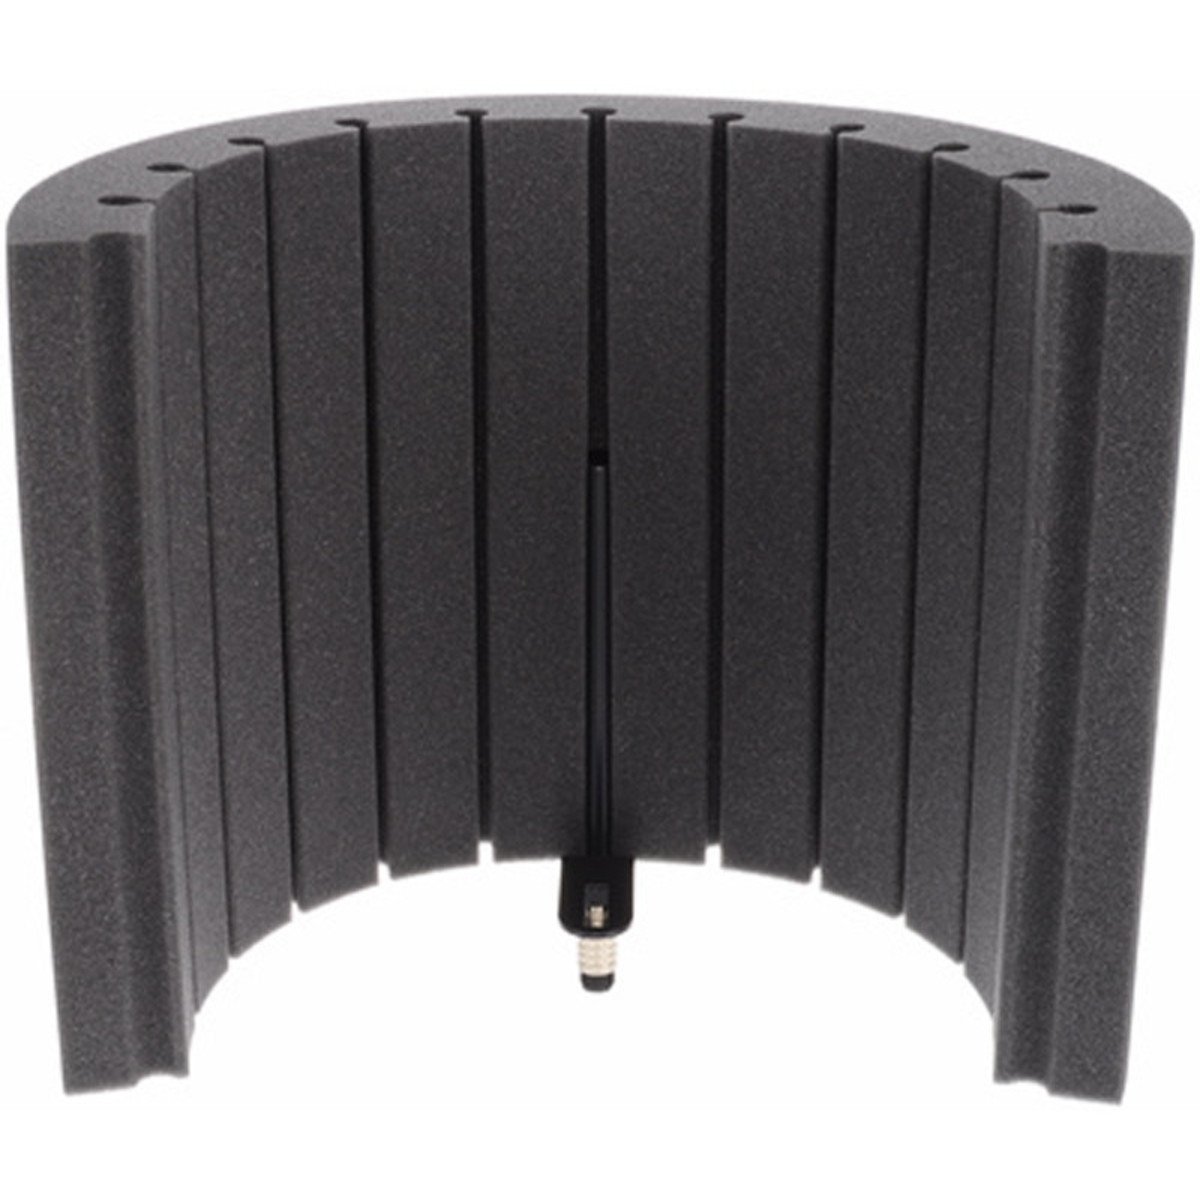 vicoustic flexi screen lite bei gear4music. Black Bedroom Furniture Sets. Home Design Ideas